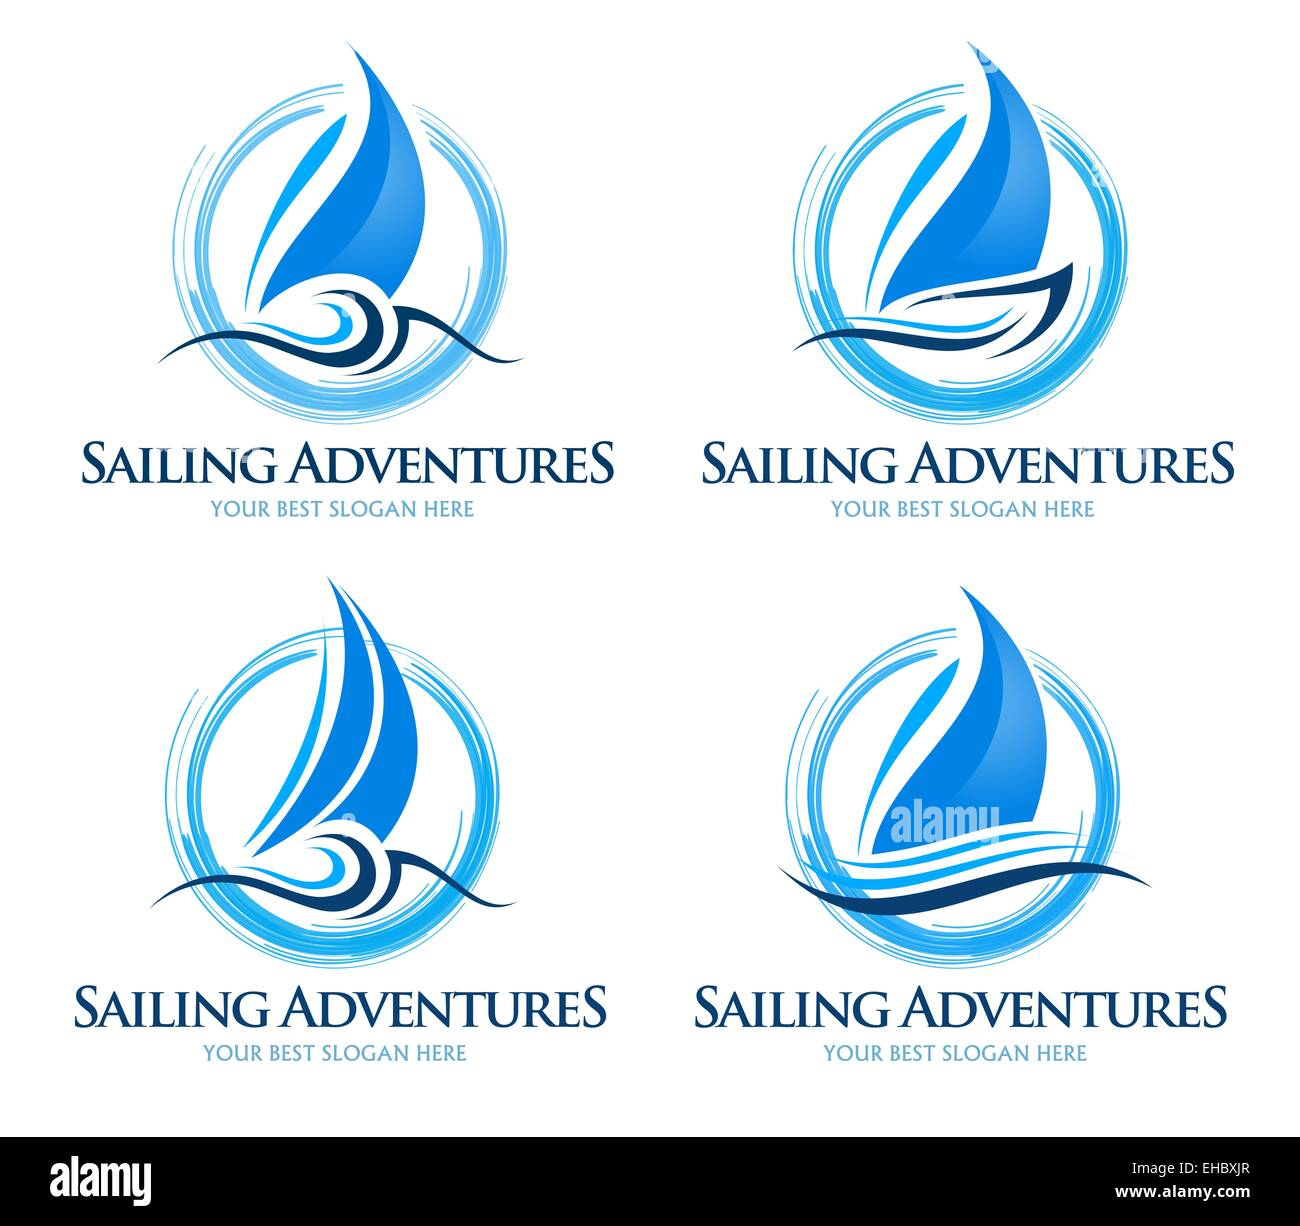 sailing boat logo creative vector design of a sailing